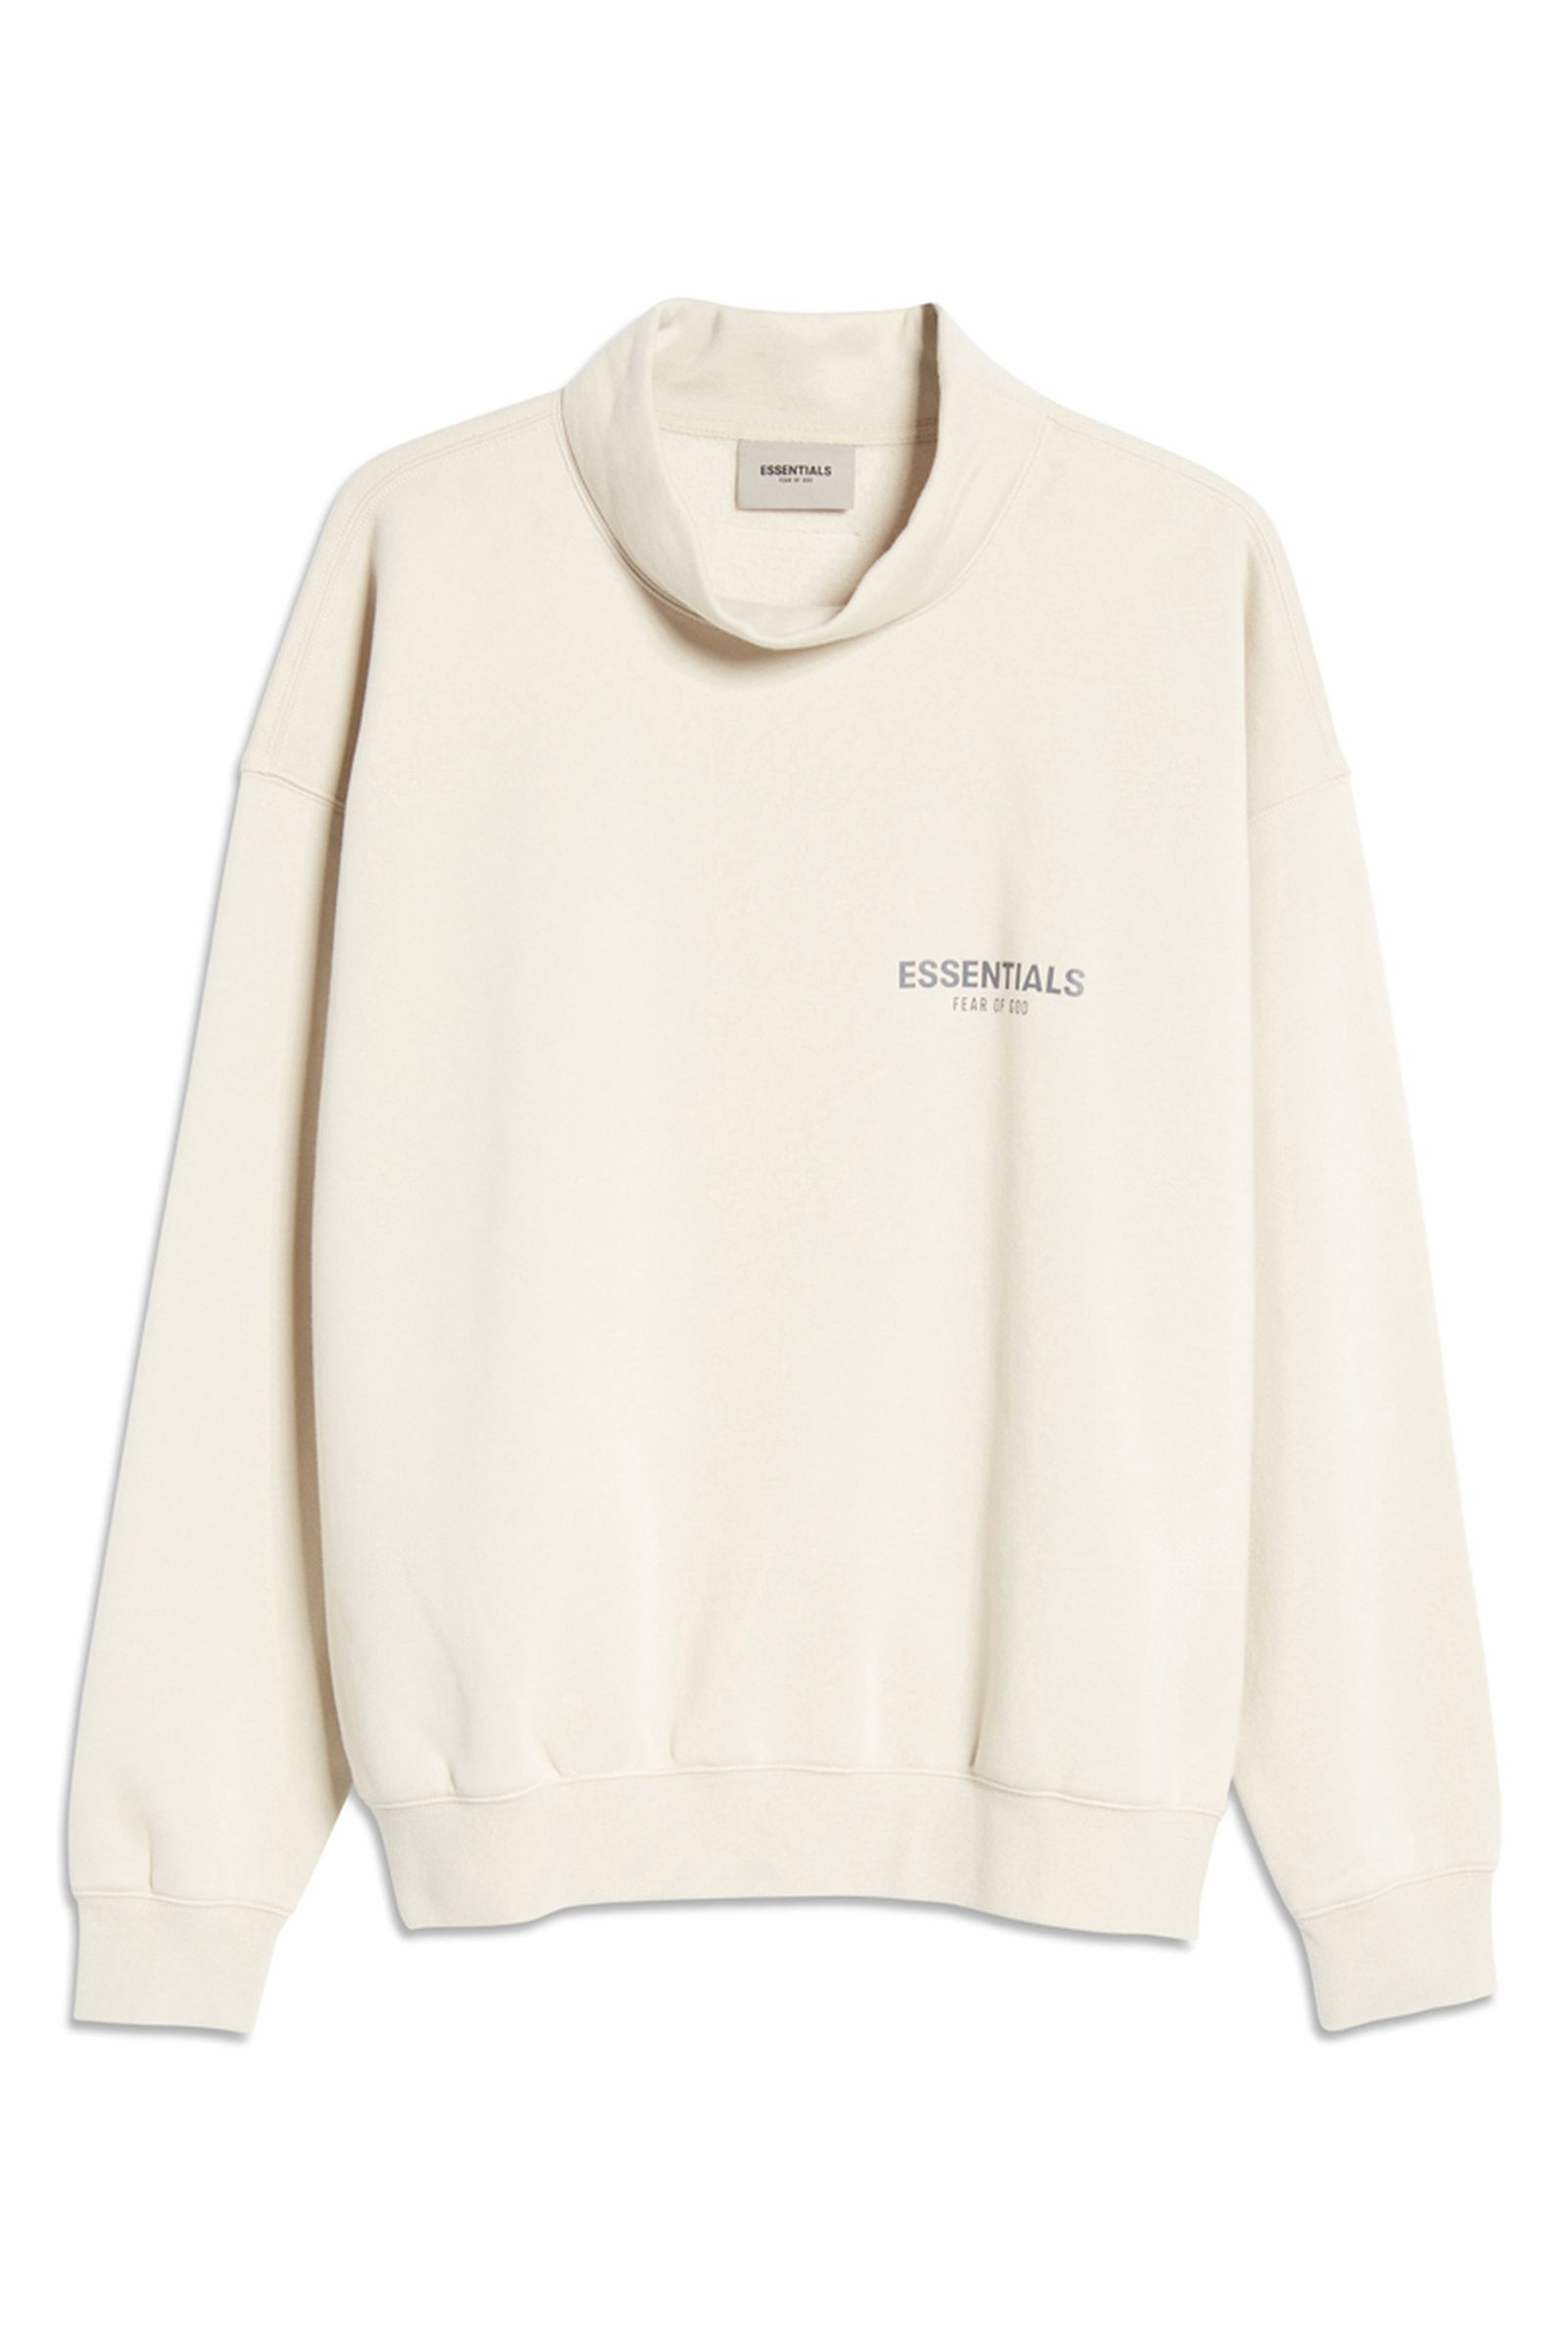 fear of god essentials nordstrom exclusive (13)